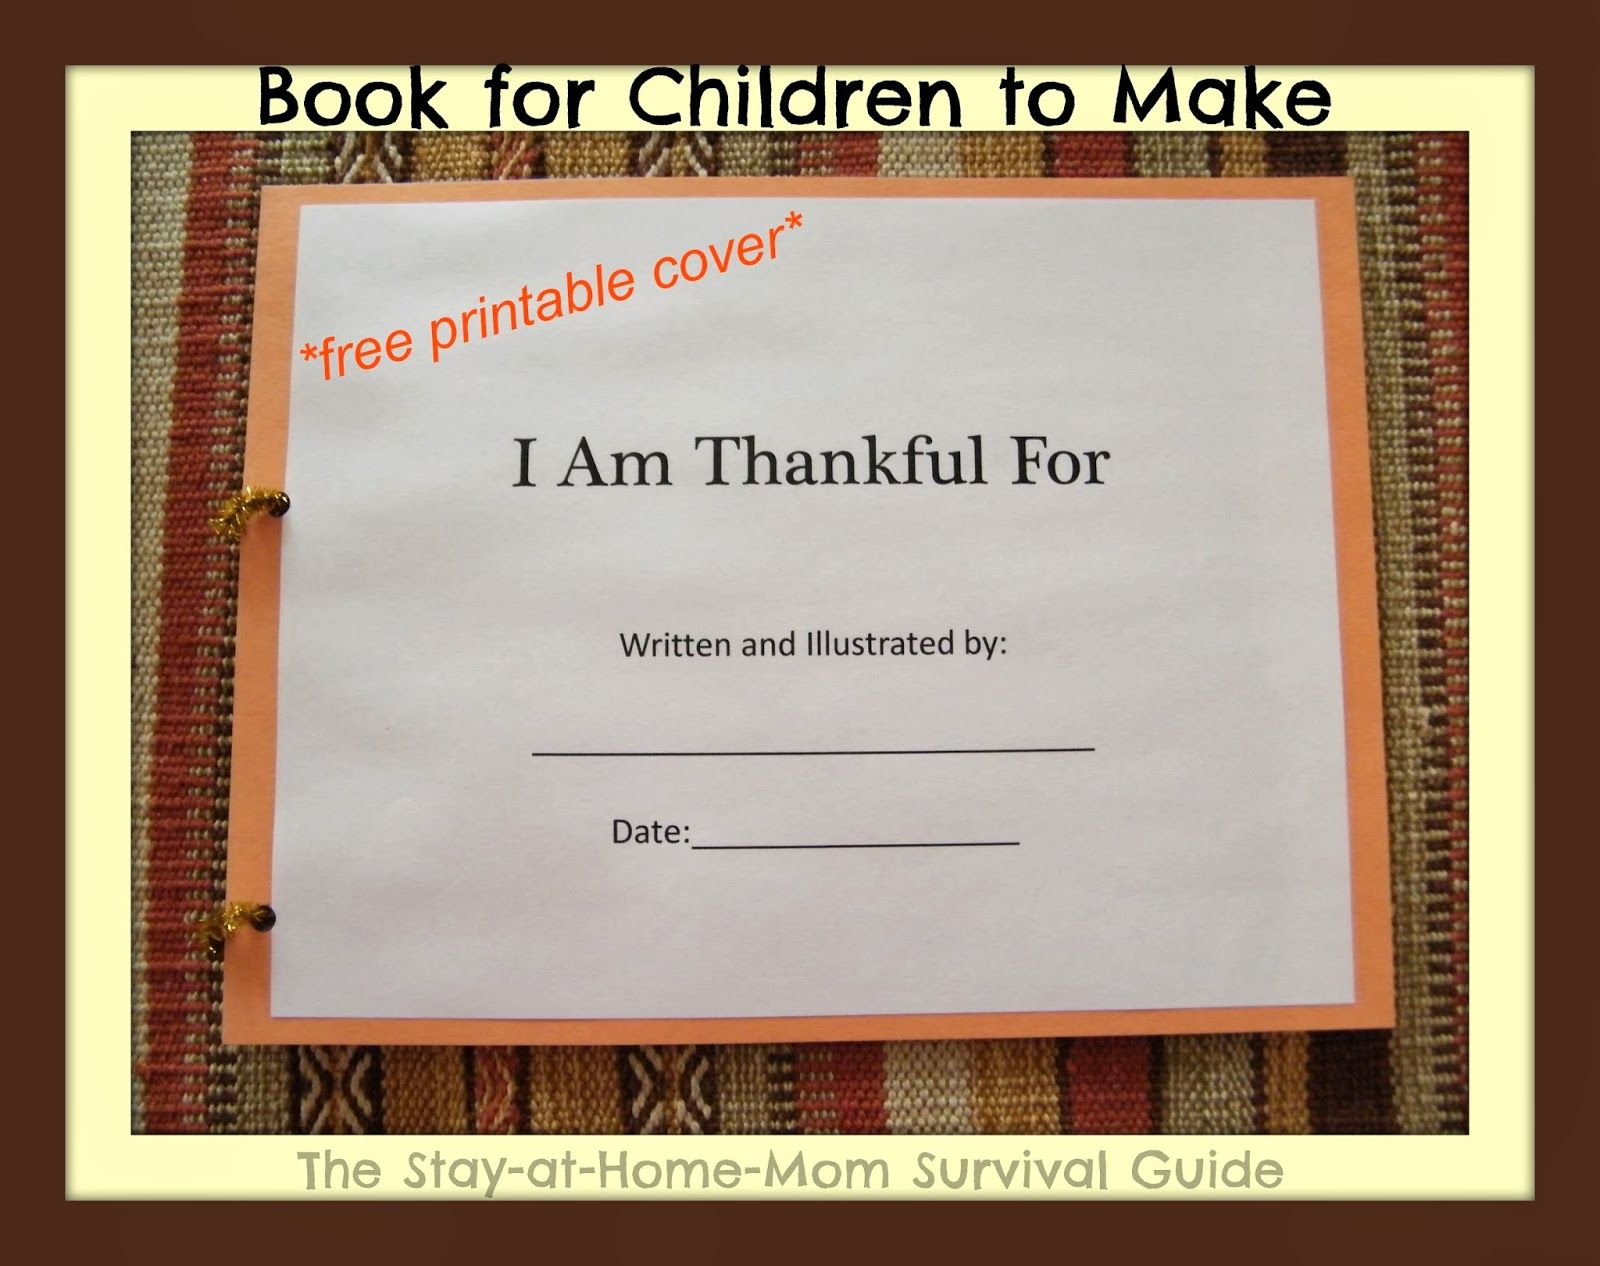 i am thankful book for children to make survival guide child